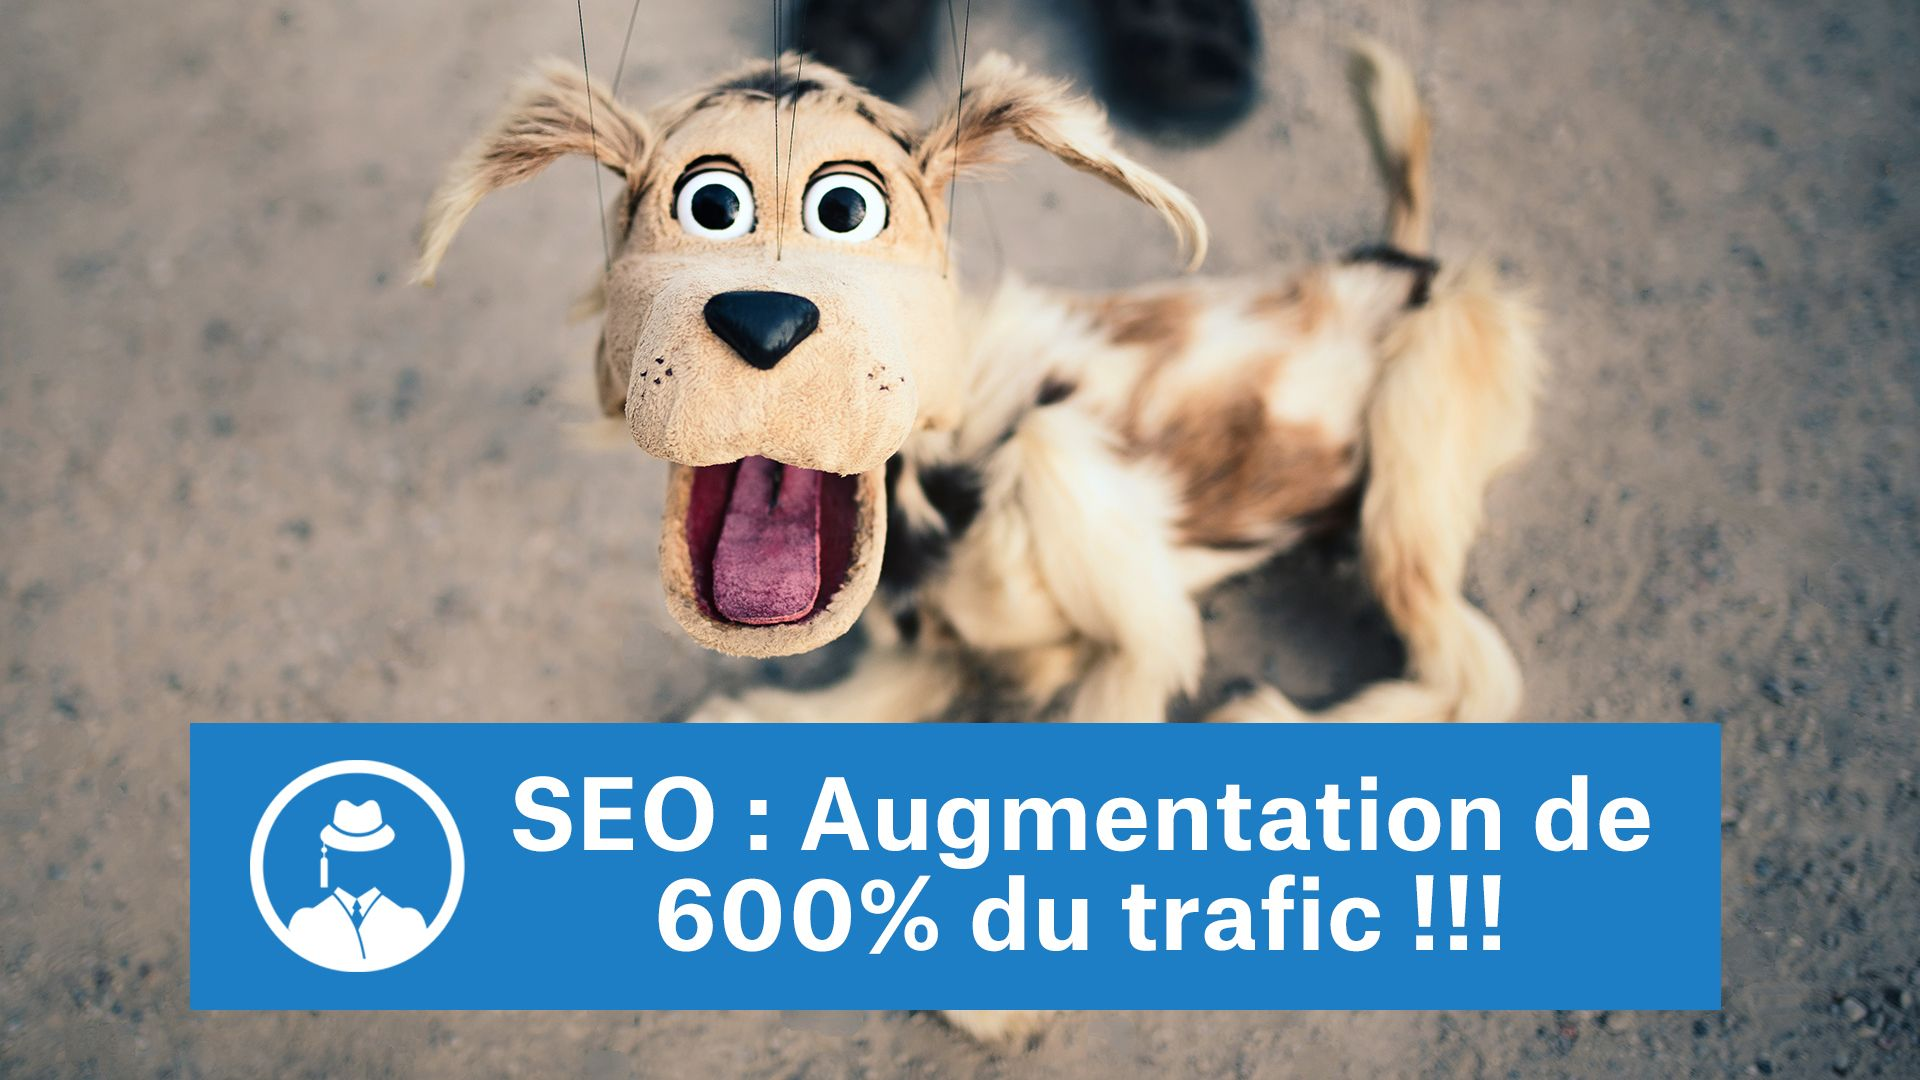 Growth Hack SEO épique #GrowthHacking #WebMarketing #FormationGrowthHacking #CentreDeFormationFrance #TunnelAARRR #AARRR #SocialMedia #CommunityManagement #SEO #MarketingDigital #SiteWeb#GrowthHacking #WebMarketing #FormationGrowthHacking #CentreDeFormationFrance #TunnelAARRR #AARRR #SocialMedia #CommunityManagement #SEO #MarketingDigital #SiteWeb: augmentation de 600% du trafic